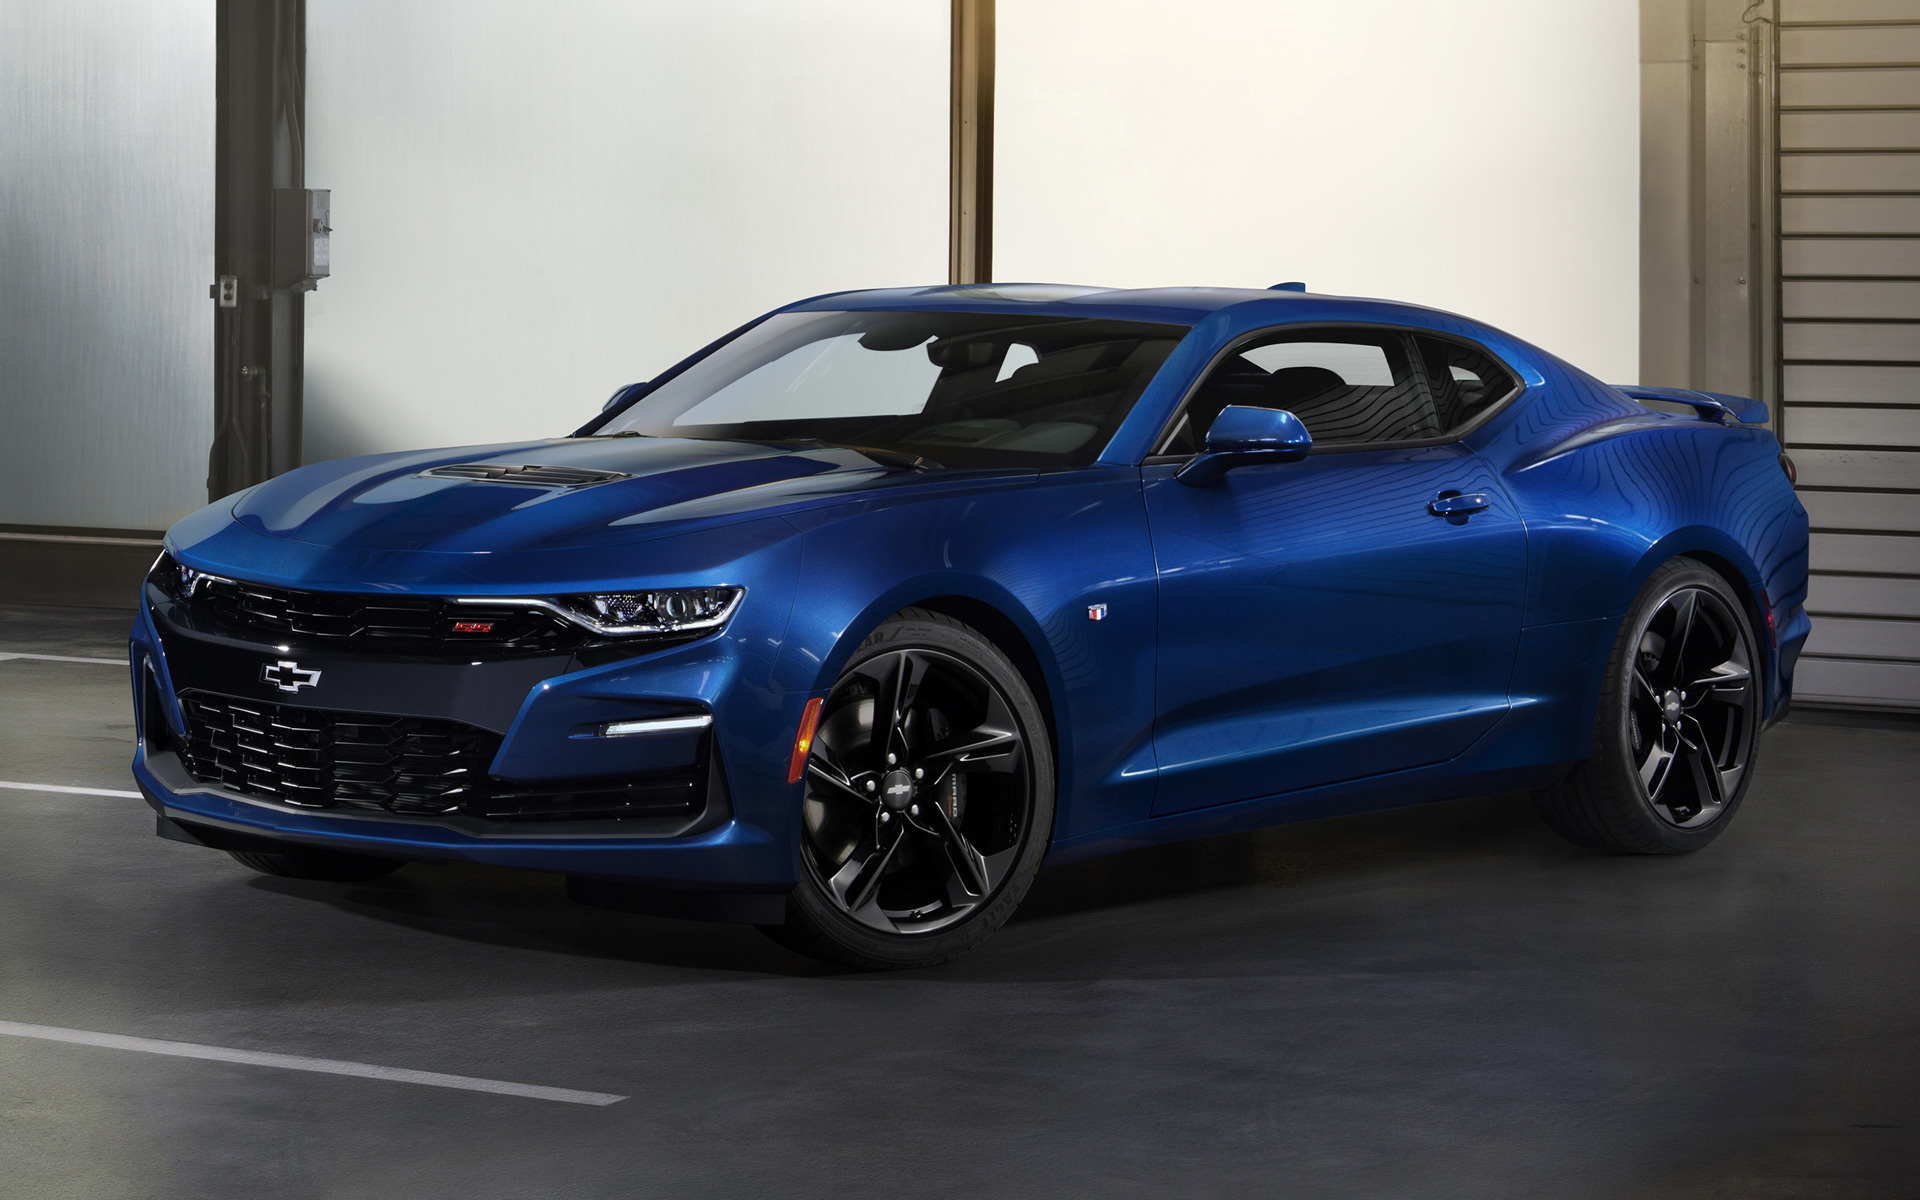 Chevrolet Camaro Ss Car Wallpaper